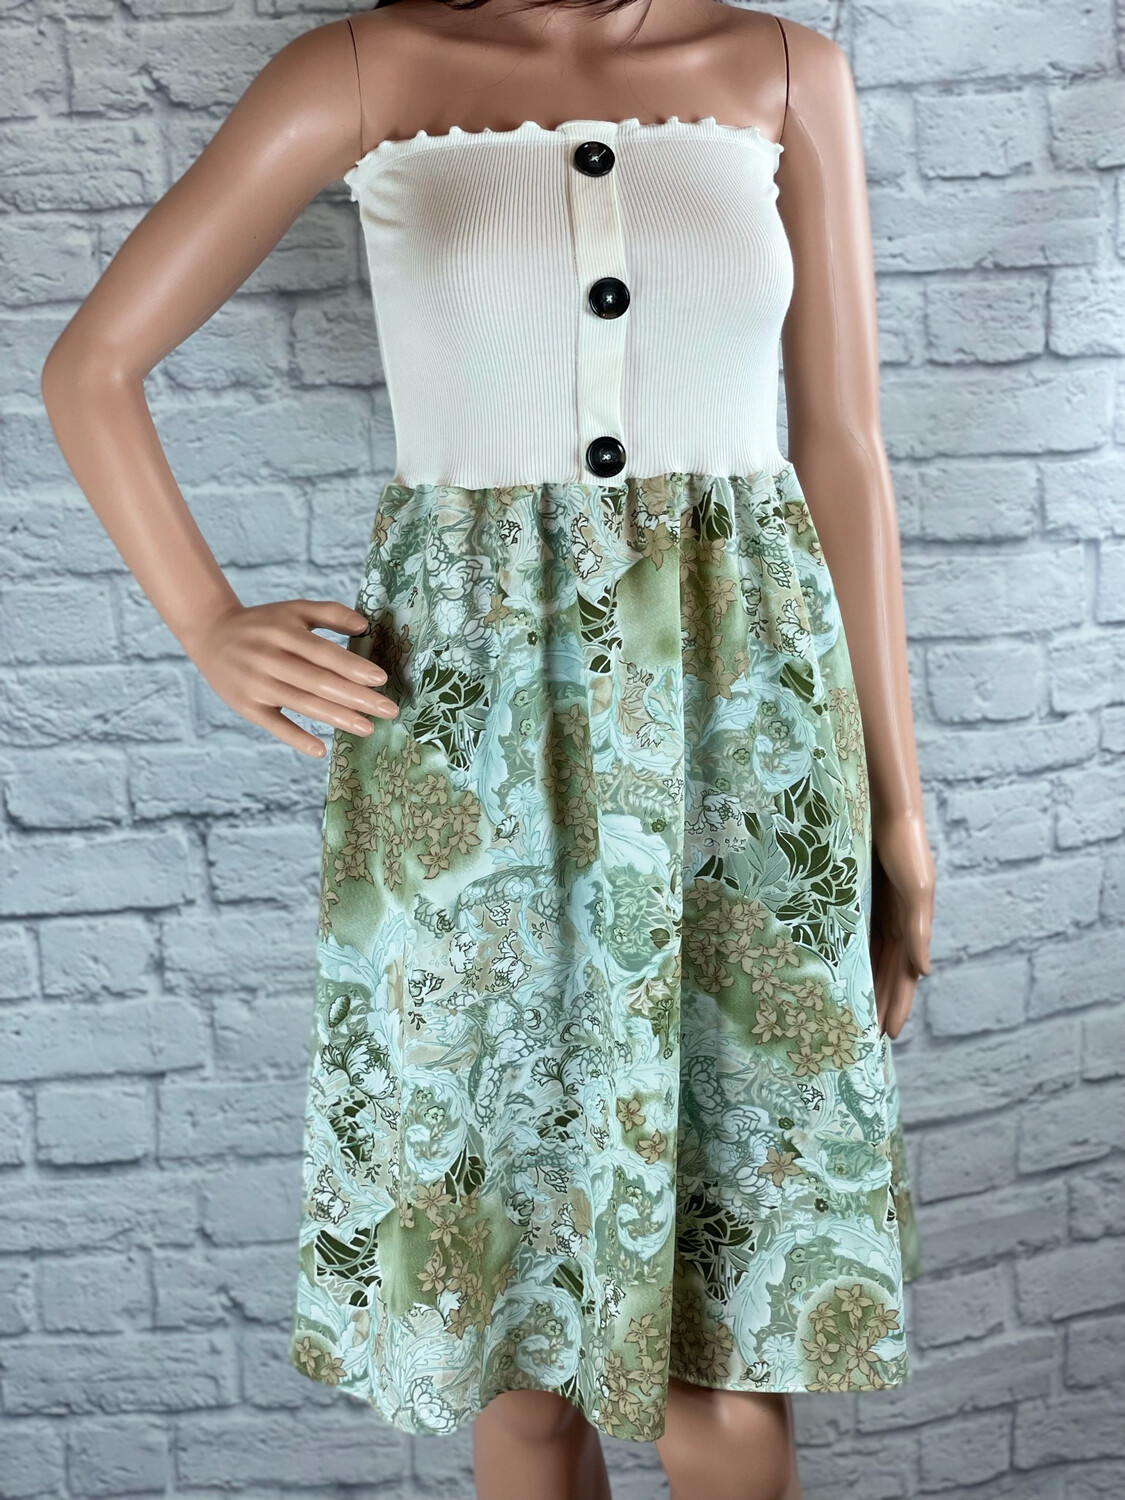 S Threads Upcycled Dress Strapless Button Floral Size XS/S/M